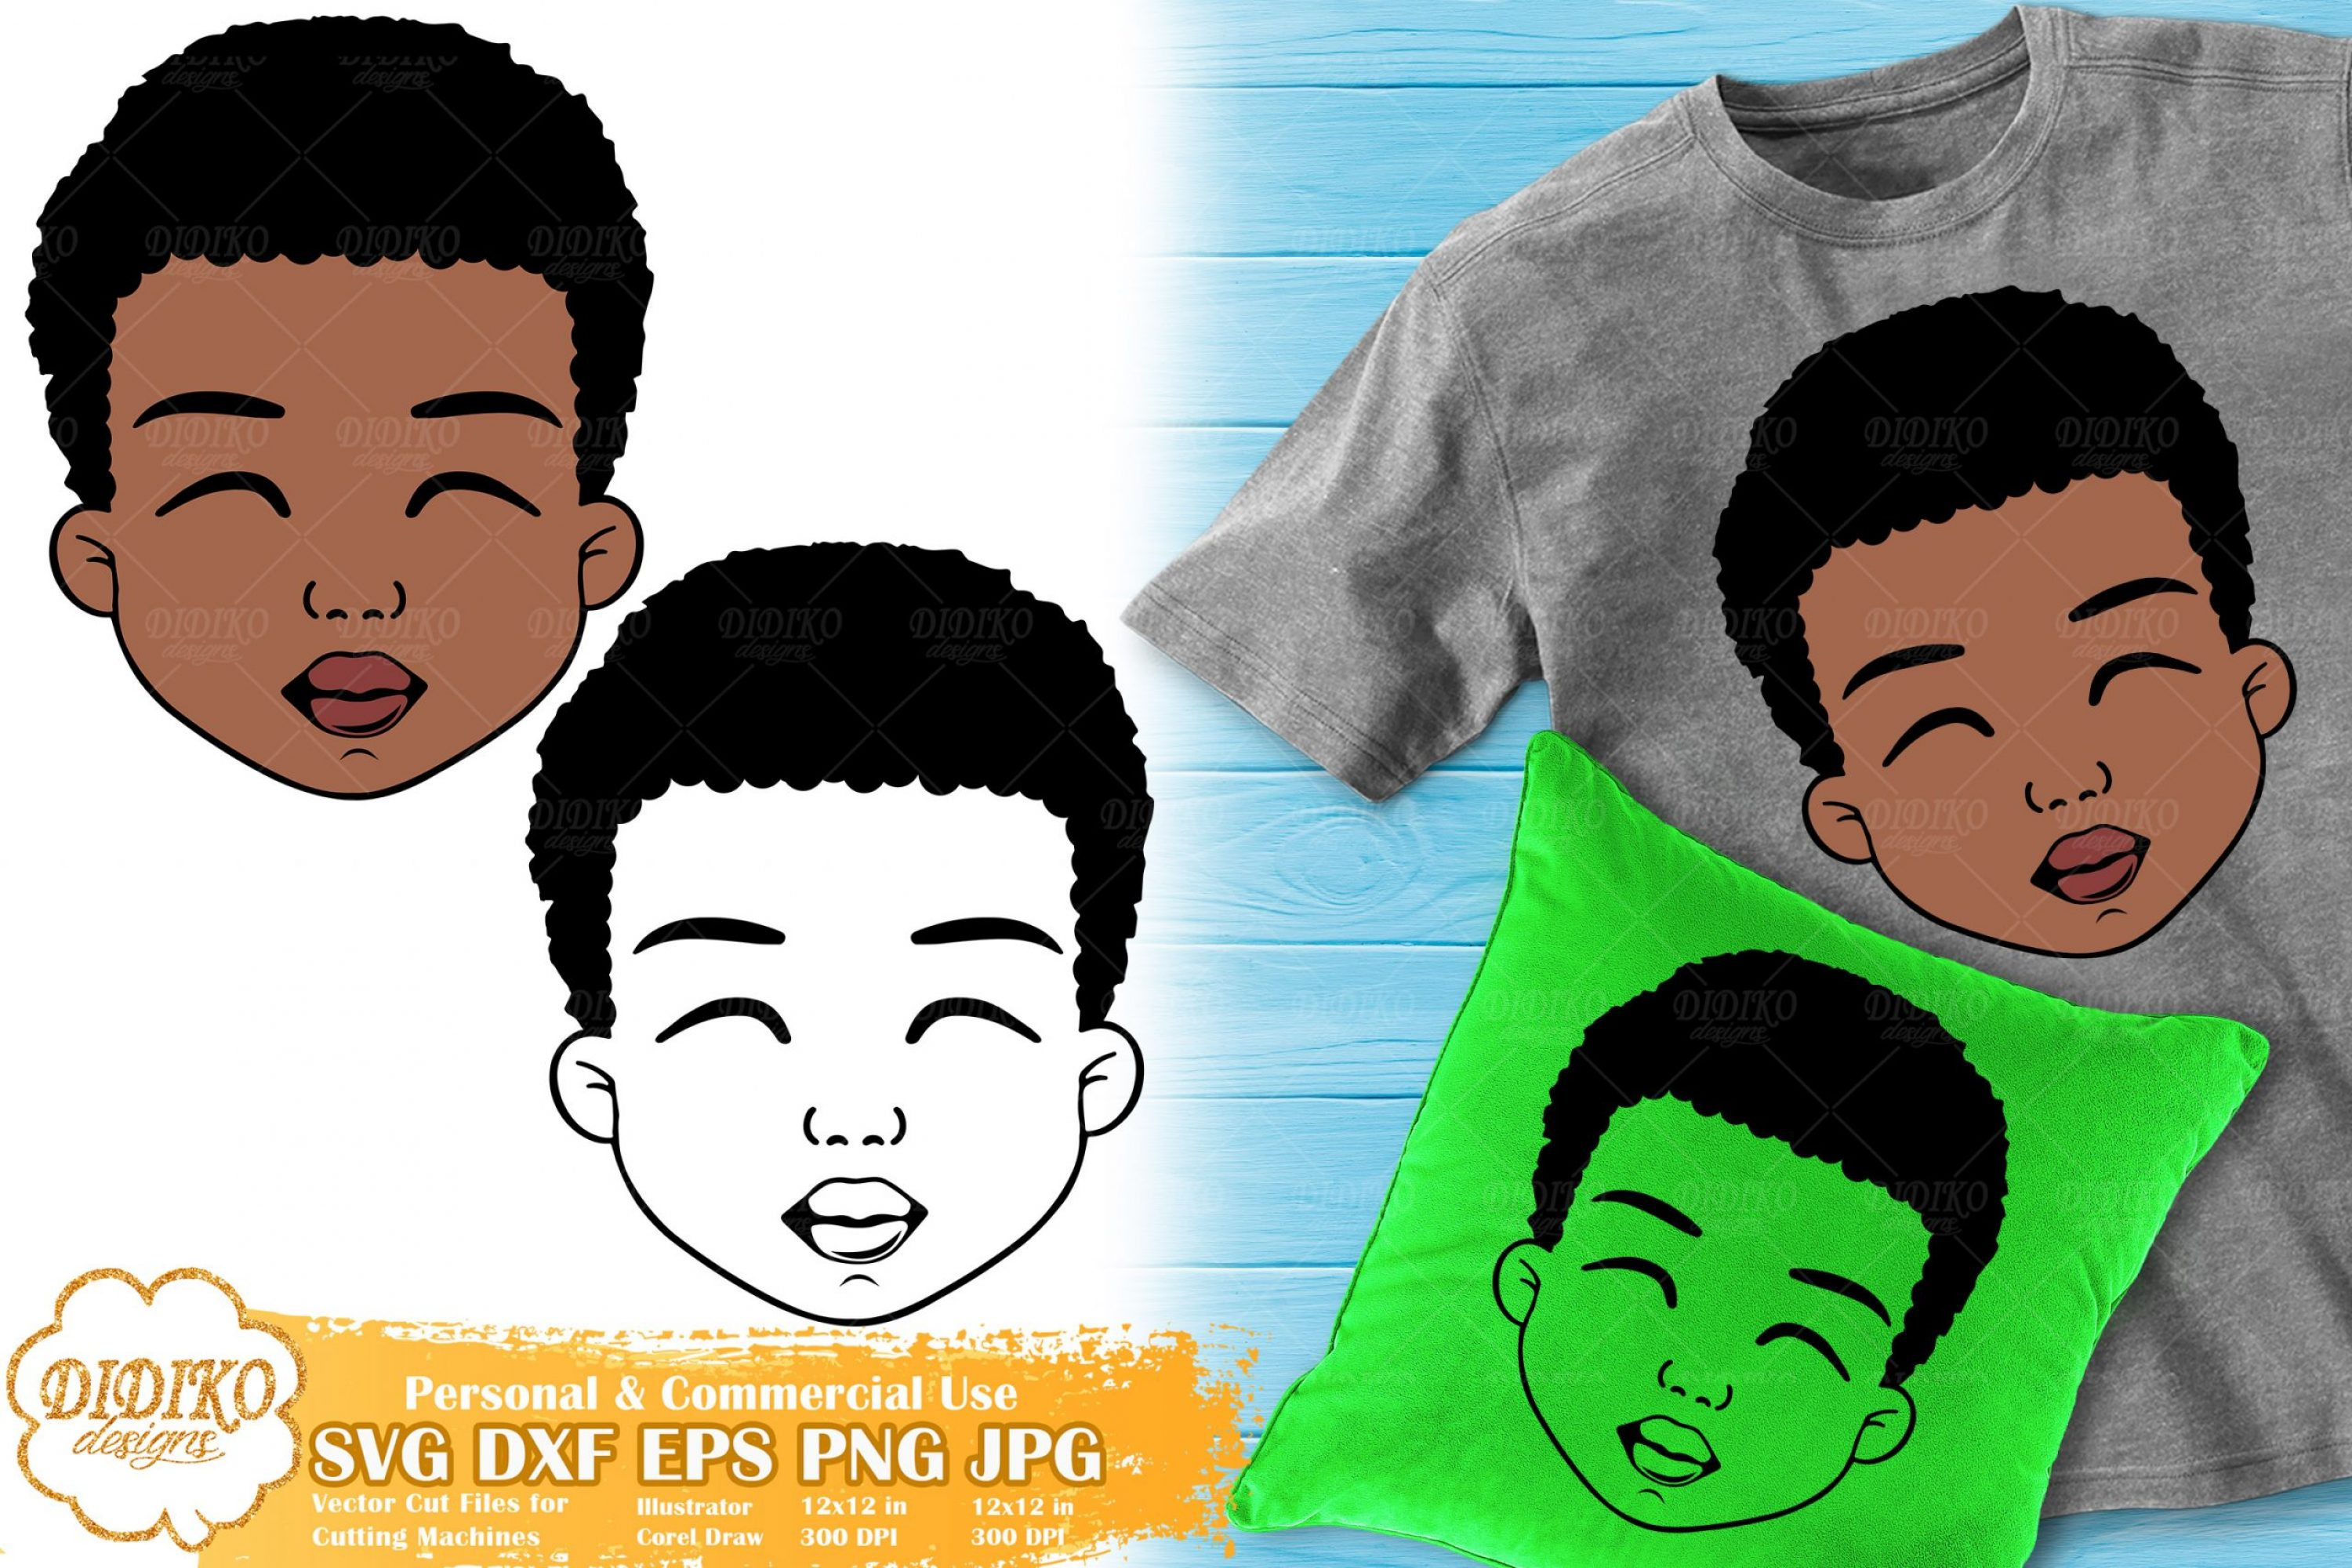 Black Boy SVG #2 | Cute Afro Boy SVG | Silhouette SVG